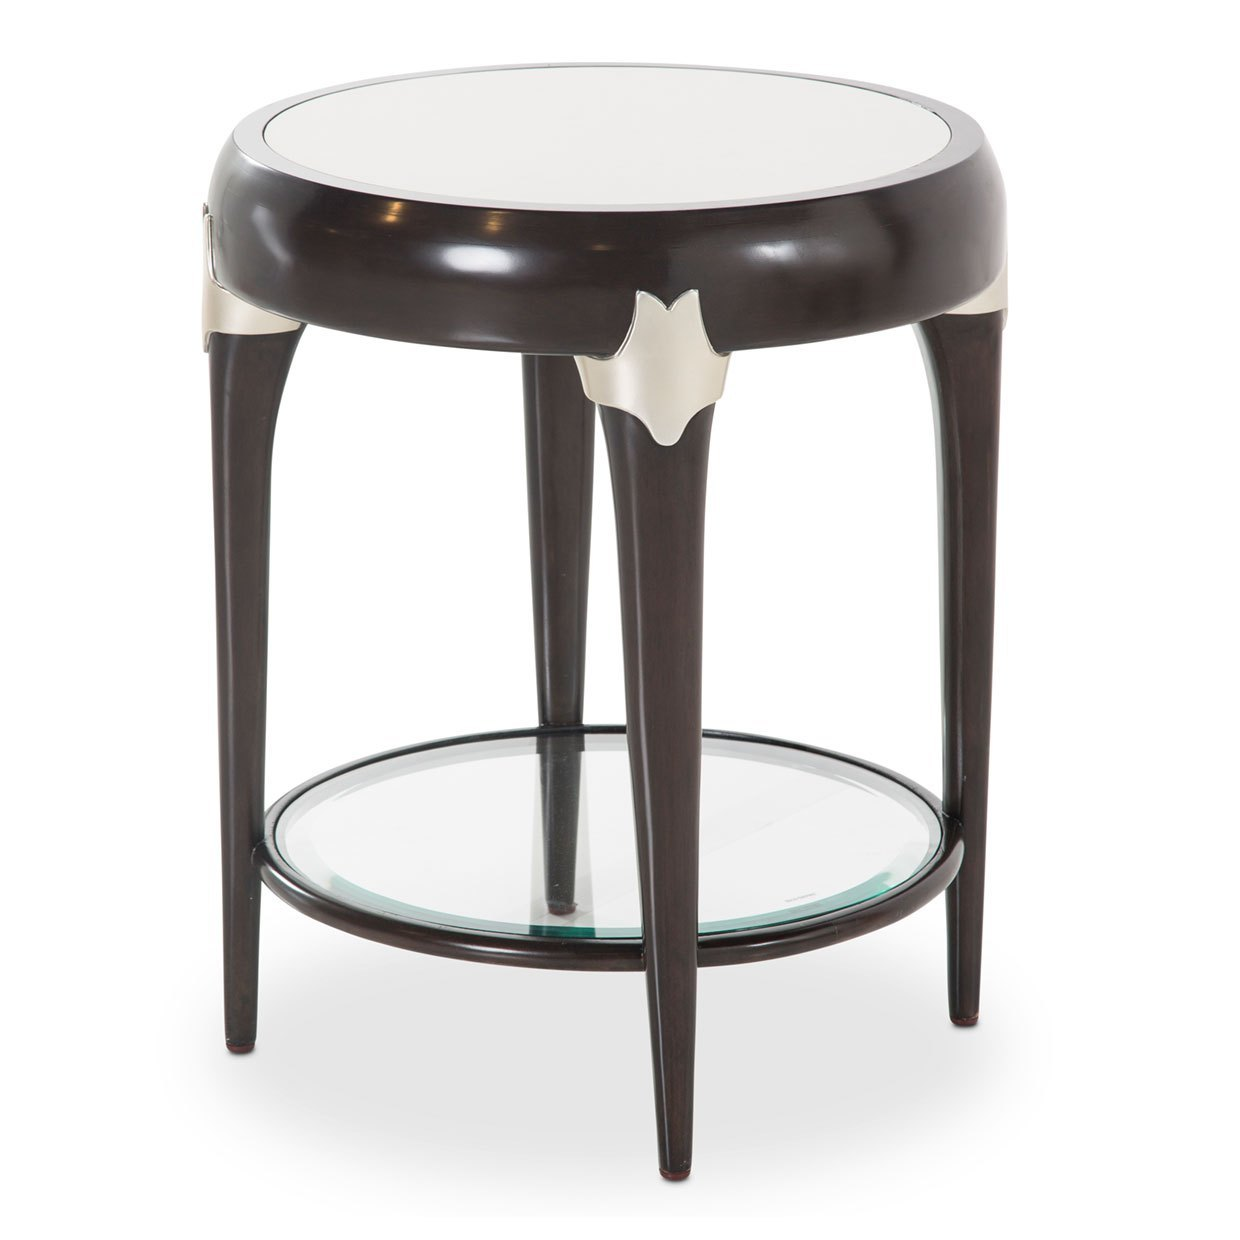 paris chic round accent table espresso finish usa furniture bedroom packages knobs and handles garden with umbrella bedside ideas tennis rubber outdoor patio lights ashley desk